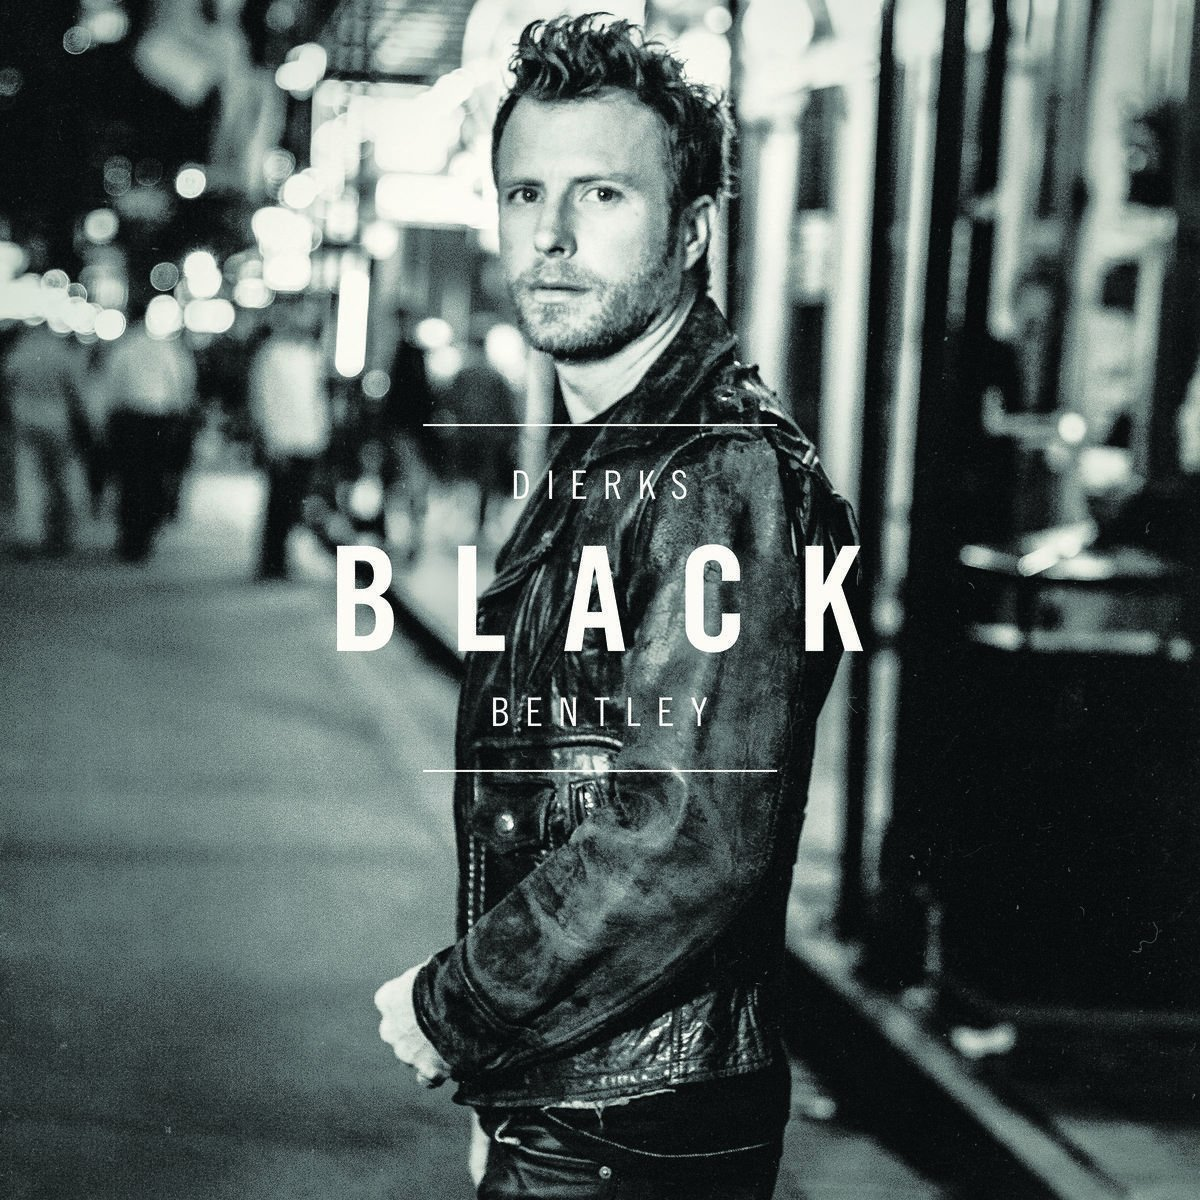 Dierks Bentley - Black.jpg